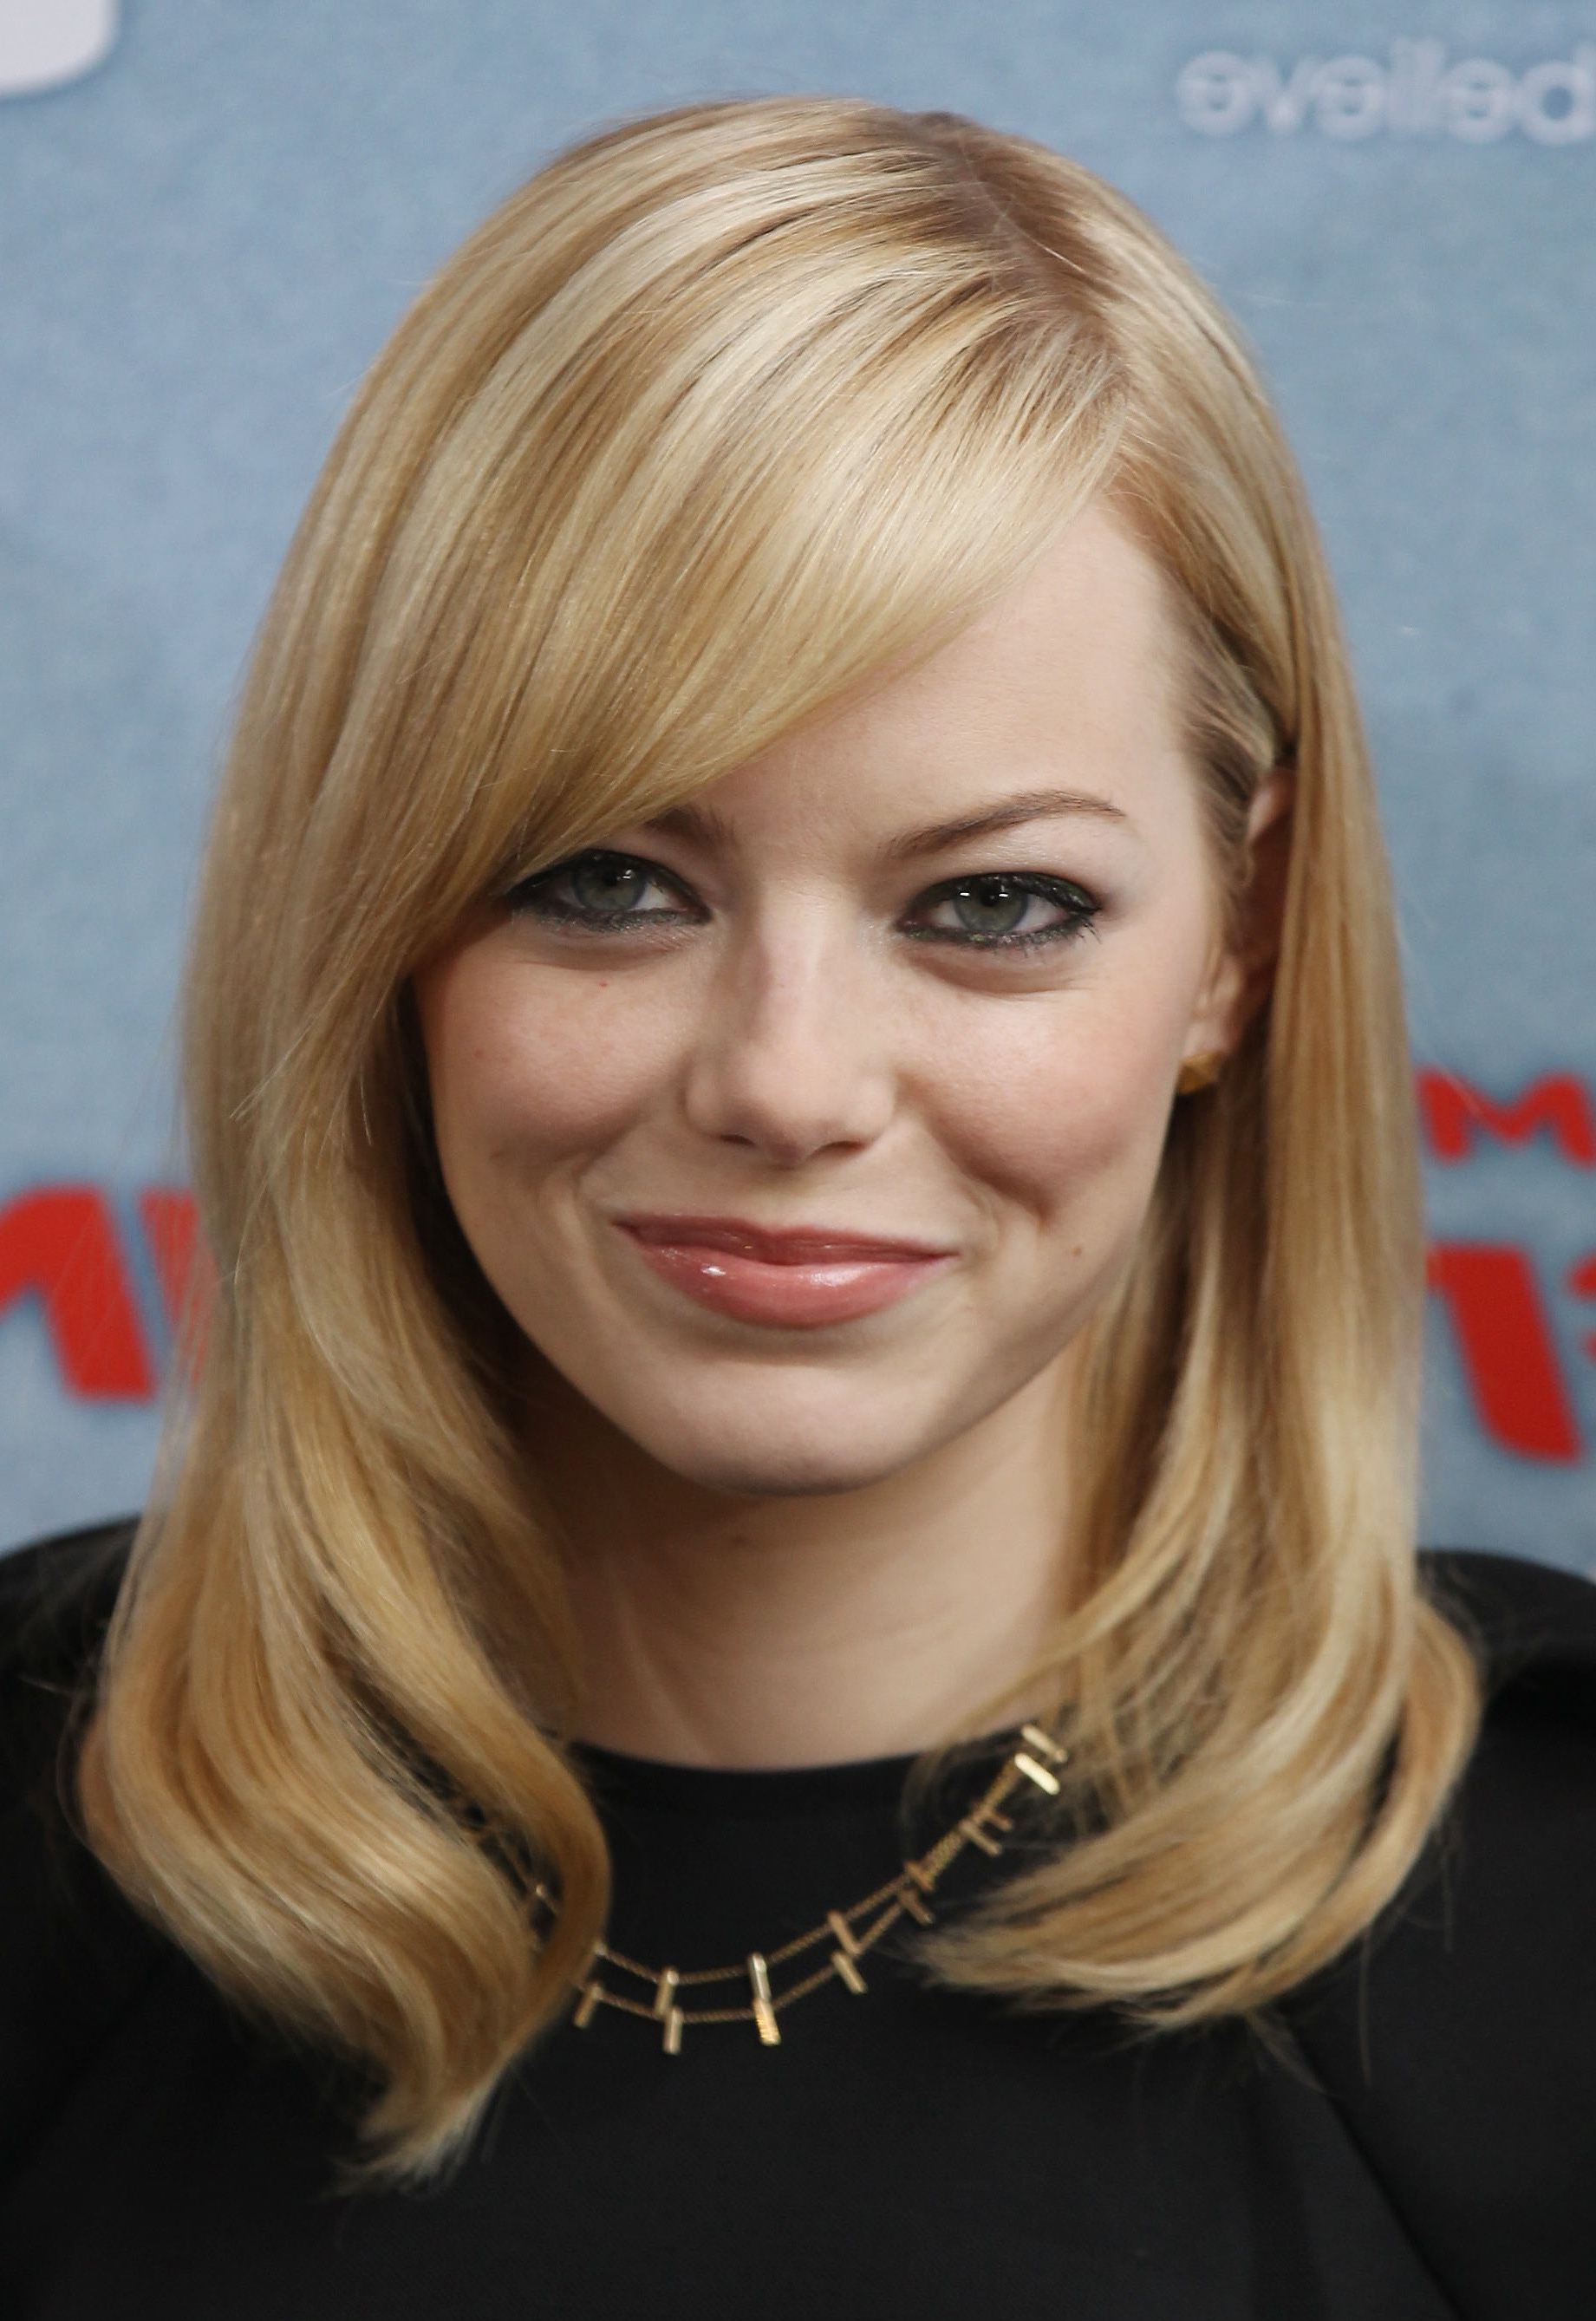 Flattering Celebrity Hairstyles For Round Faces (View 11 of 20)